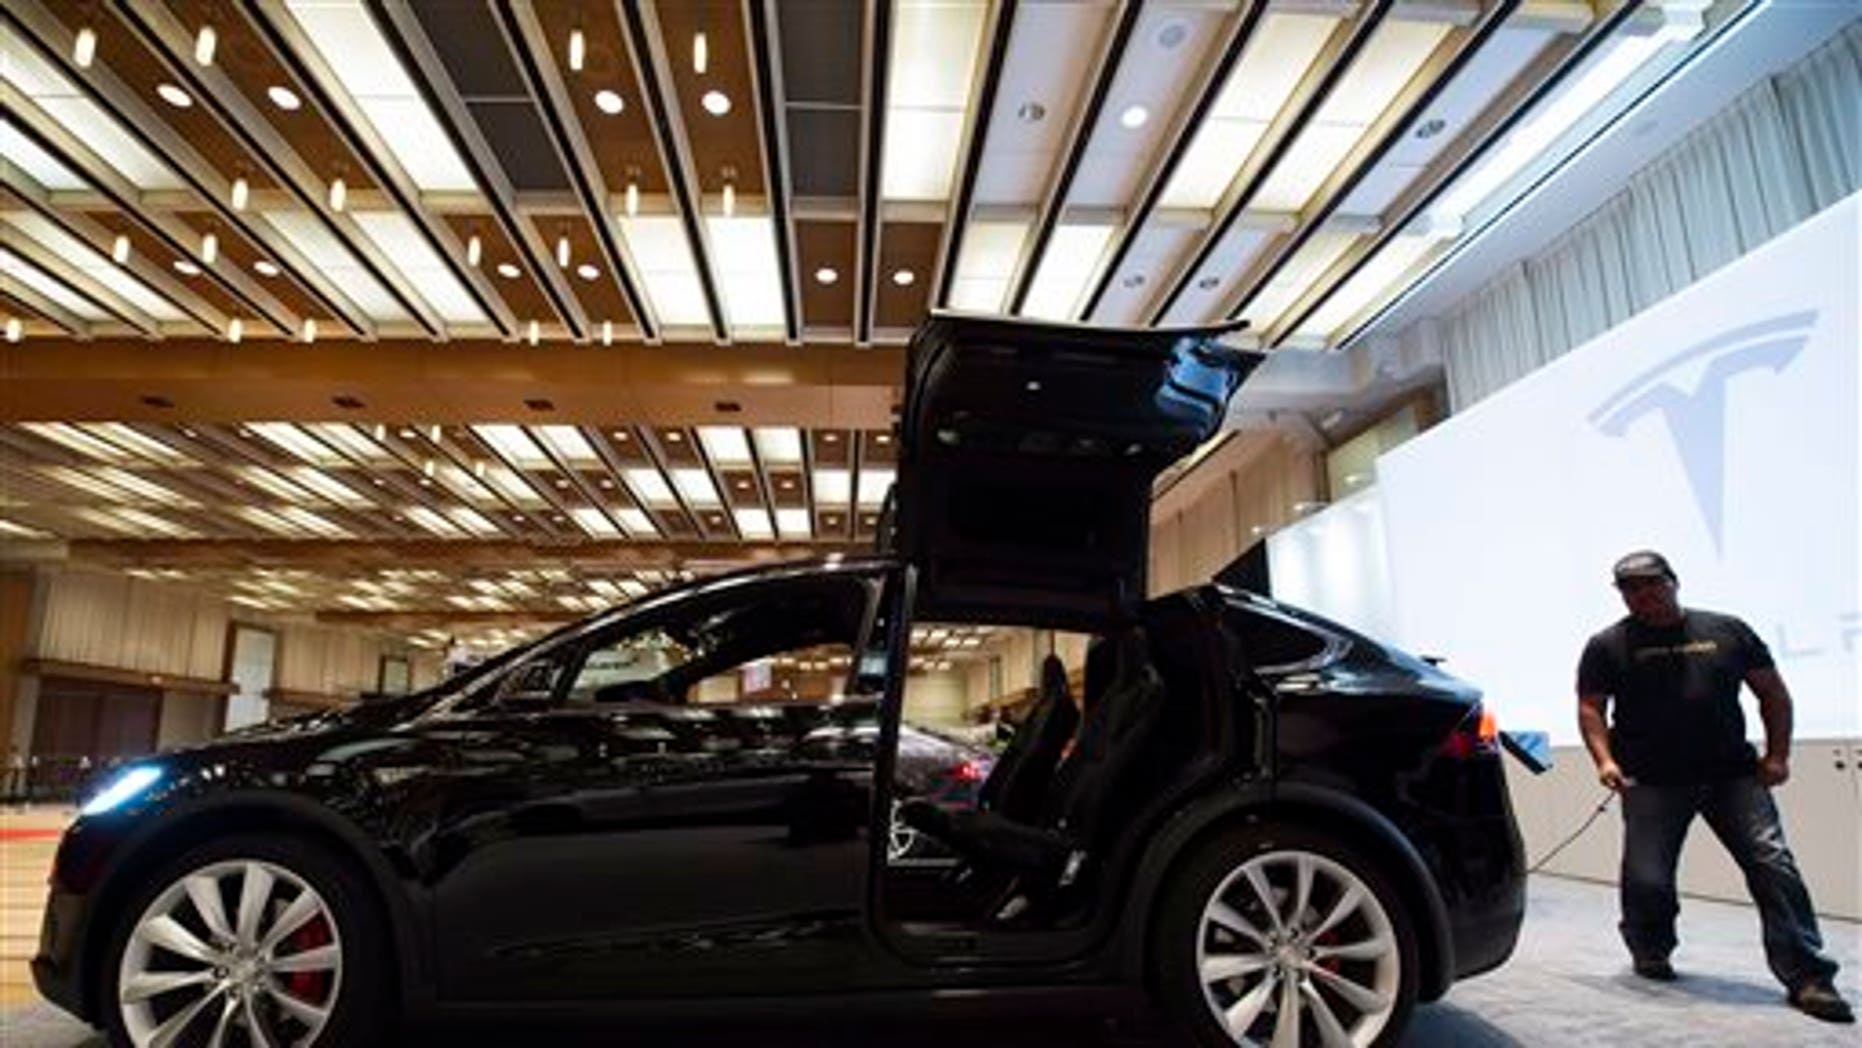 The Tesla Model X is shown at the 2016 Canadian International Autoshow in Toronto on Feb. 11, 2016. (Nathan Denette/The Canadian Press via AP)